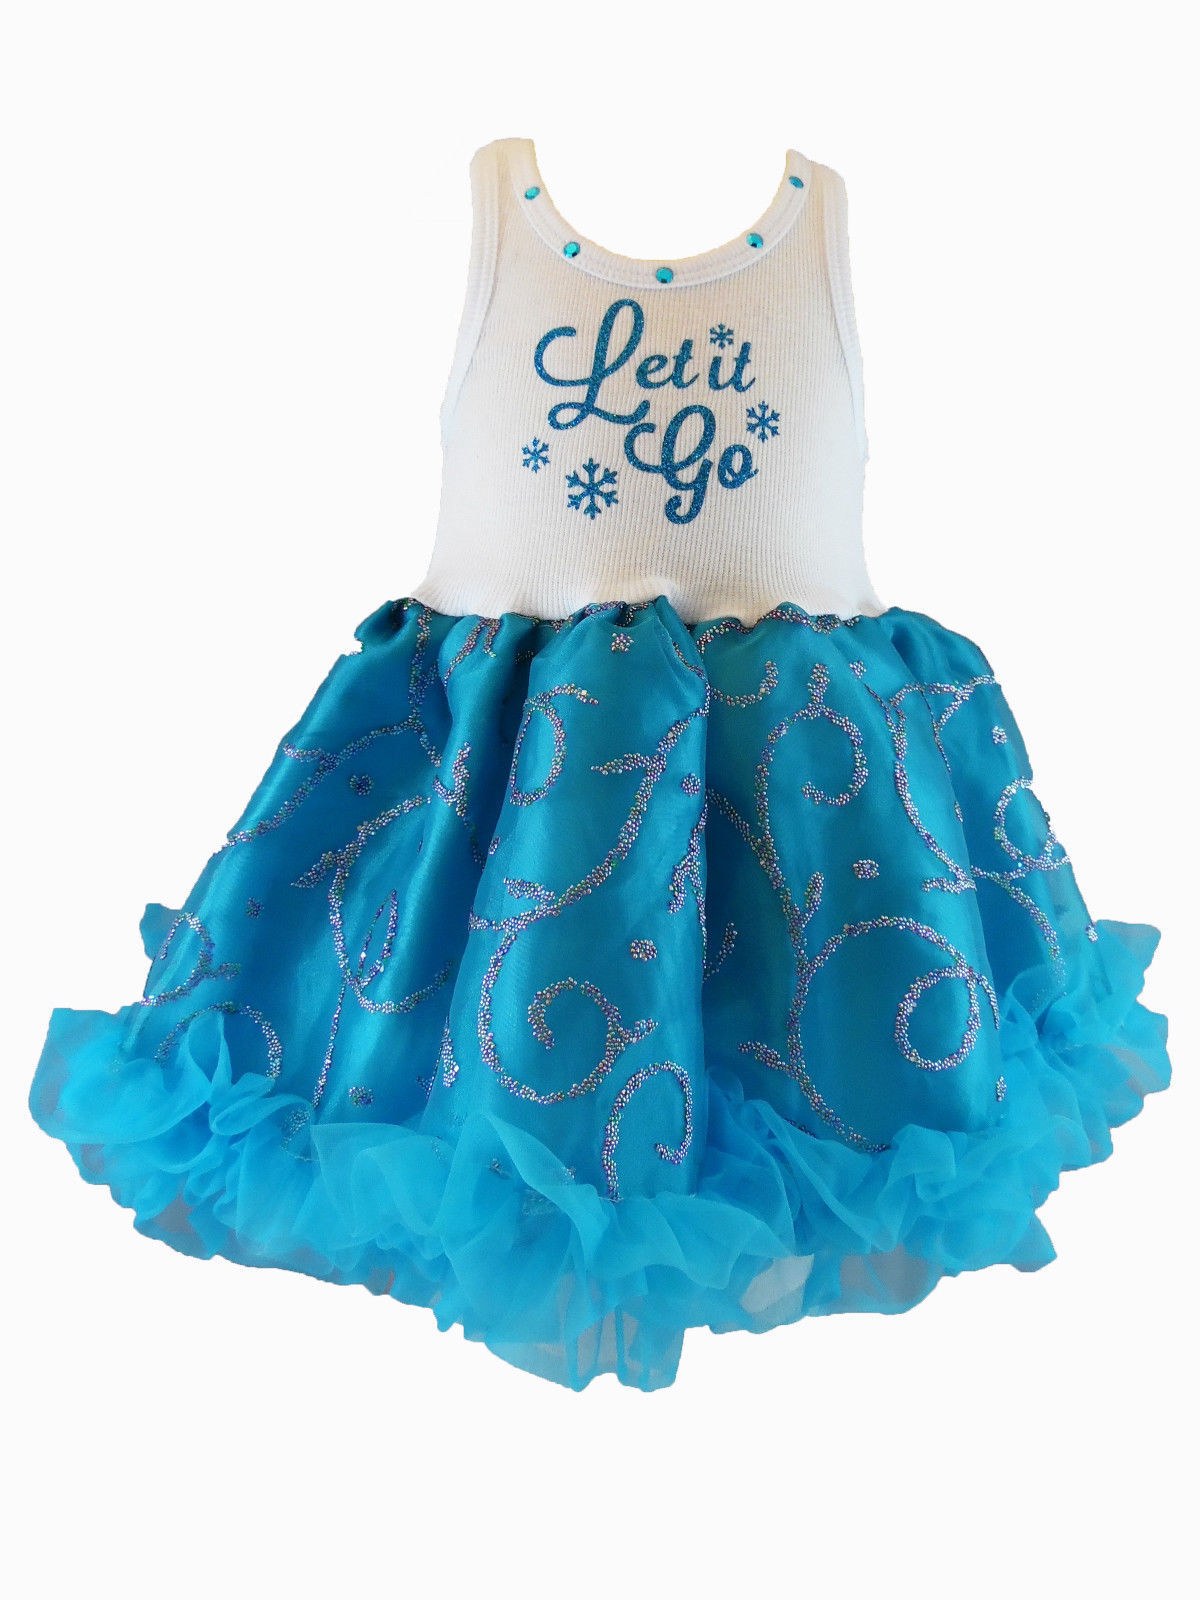 Image 1 of Chic Let It Go Chiffon Sleeveless Tutu Dress 3-6x Cupcakes & Kisses Turquoise